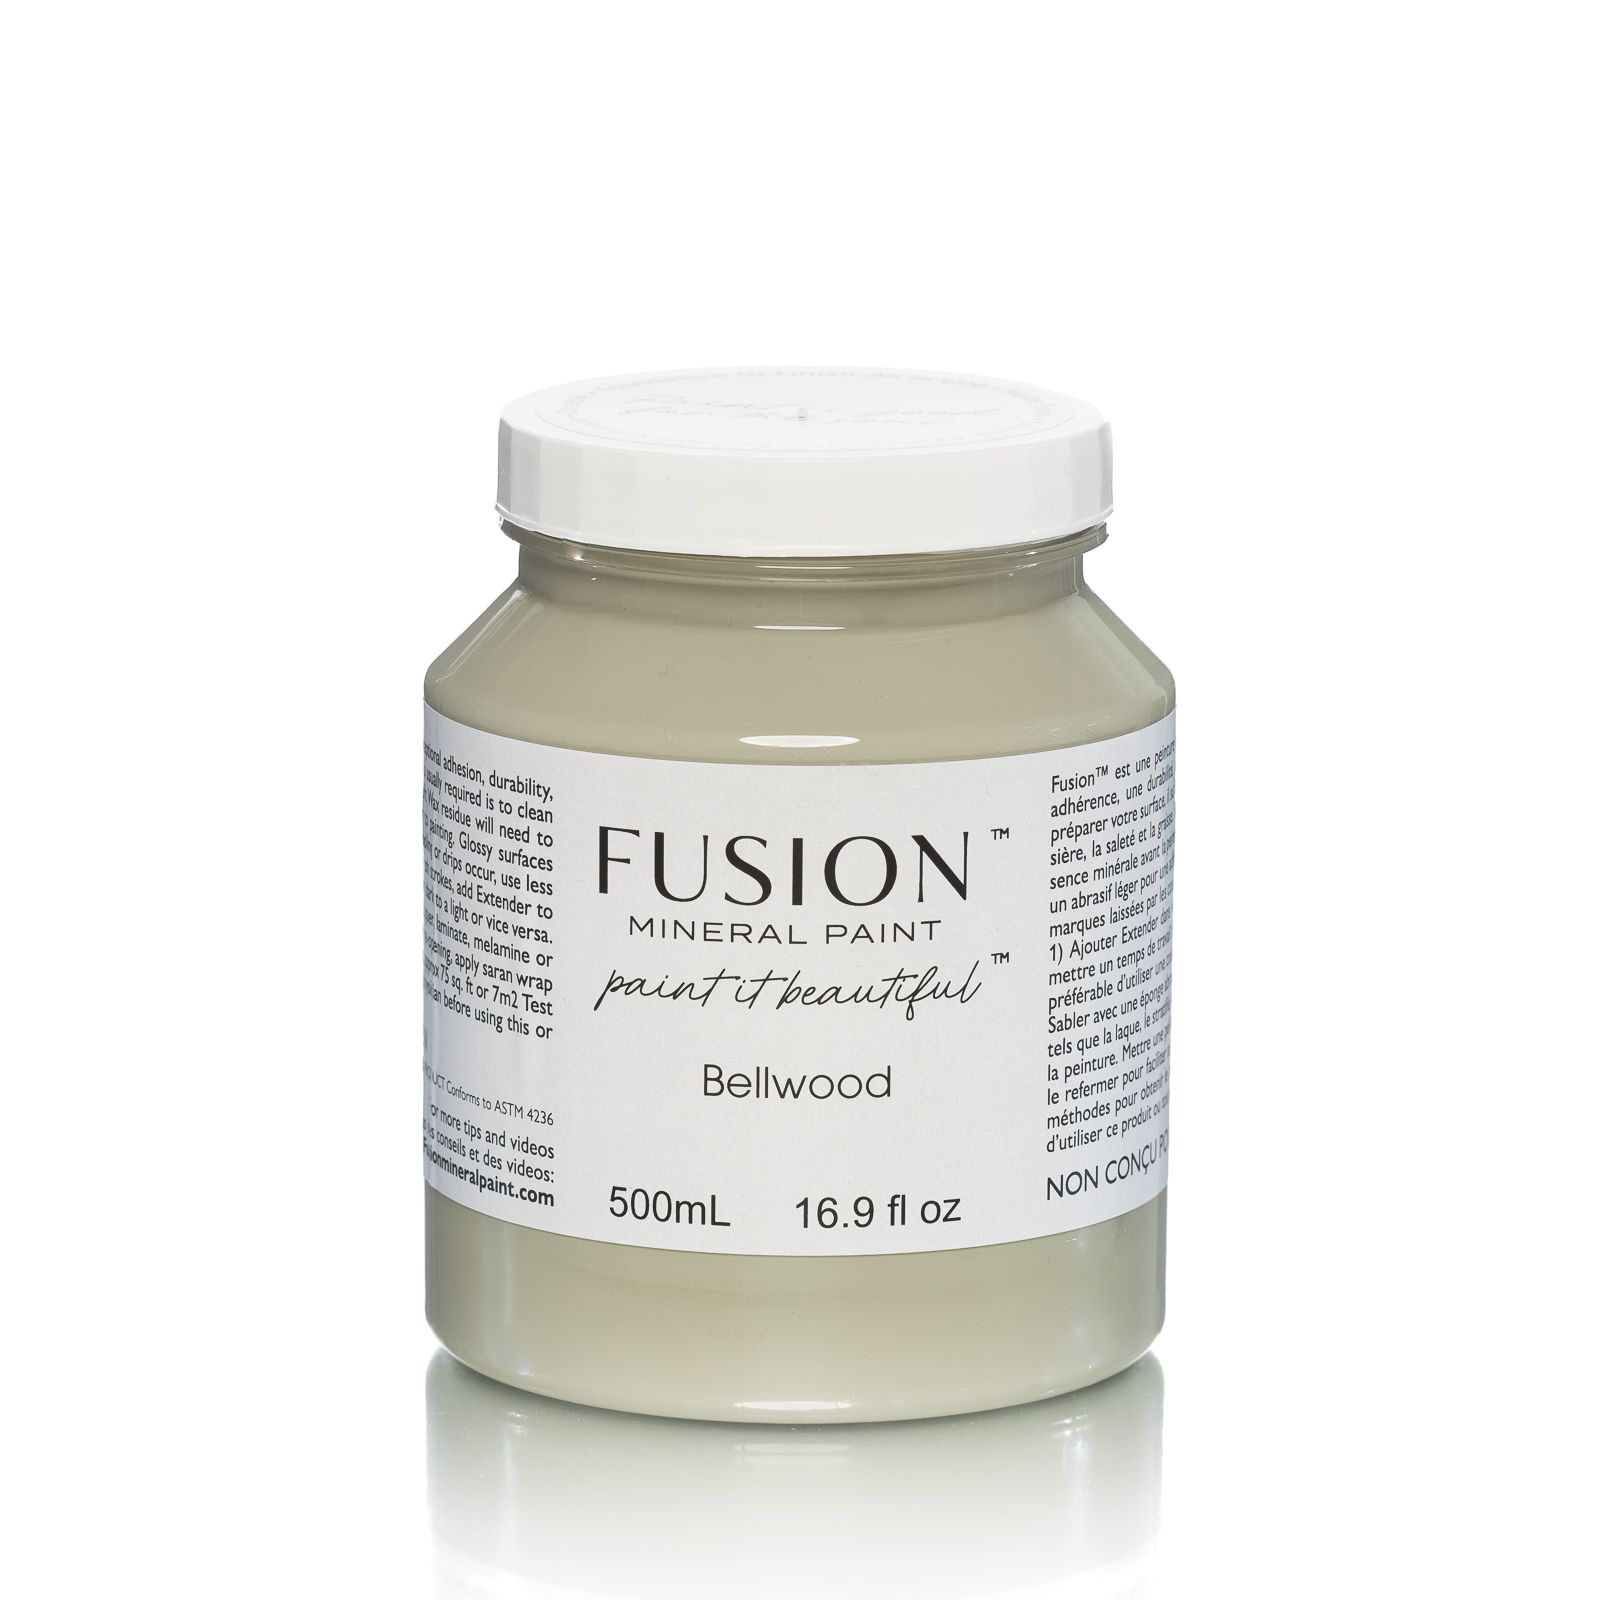 Fusion Mineral Paint Fusion - Bellwood - 500ml